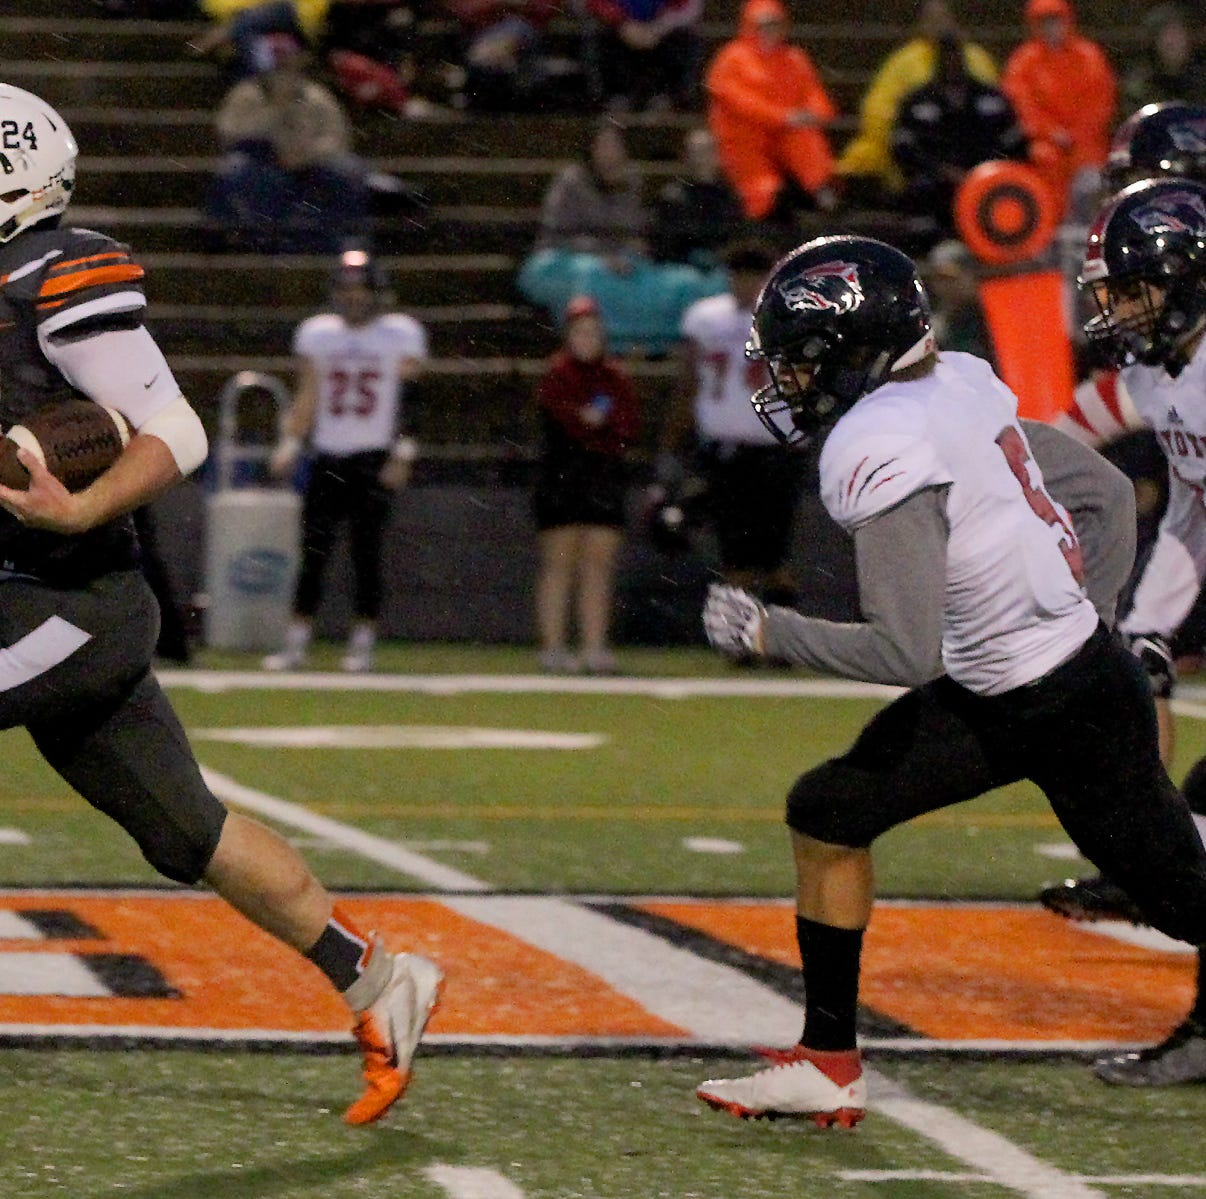 Wichita Falls High School Coyotes rally in 4th to beat Burkburnett, 30-24